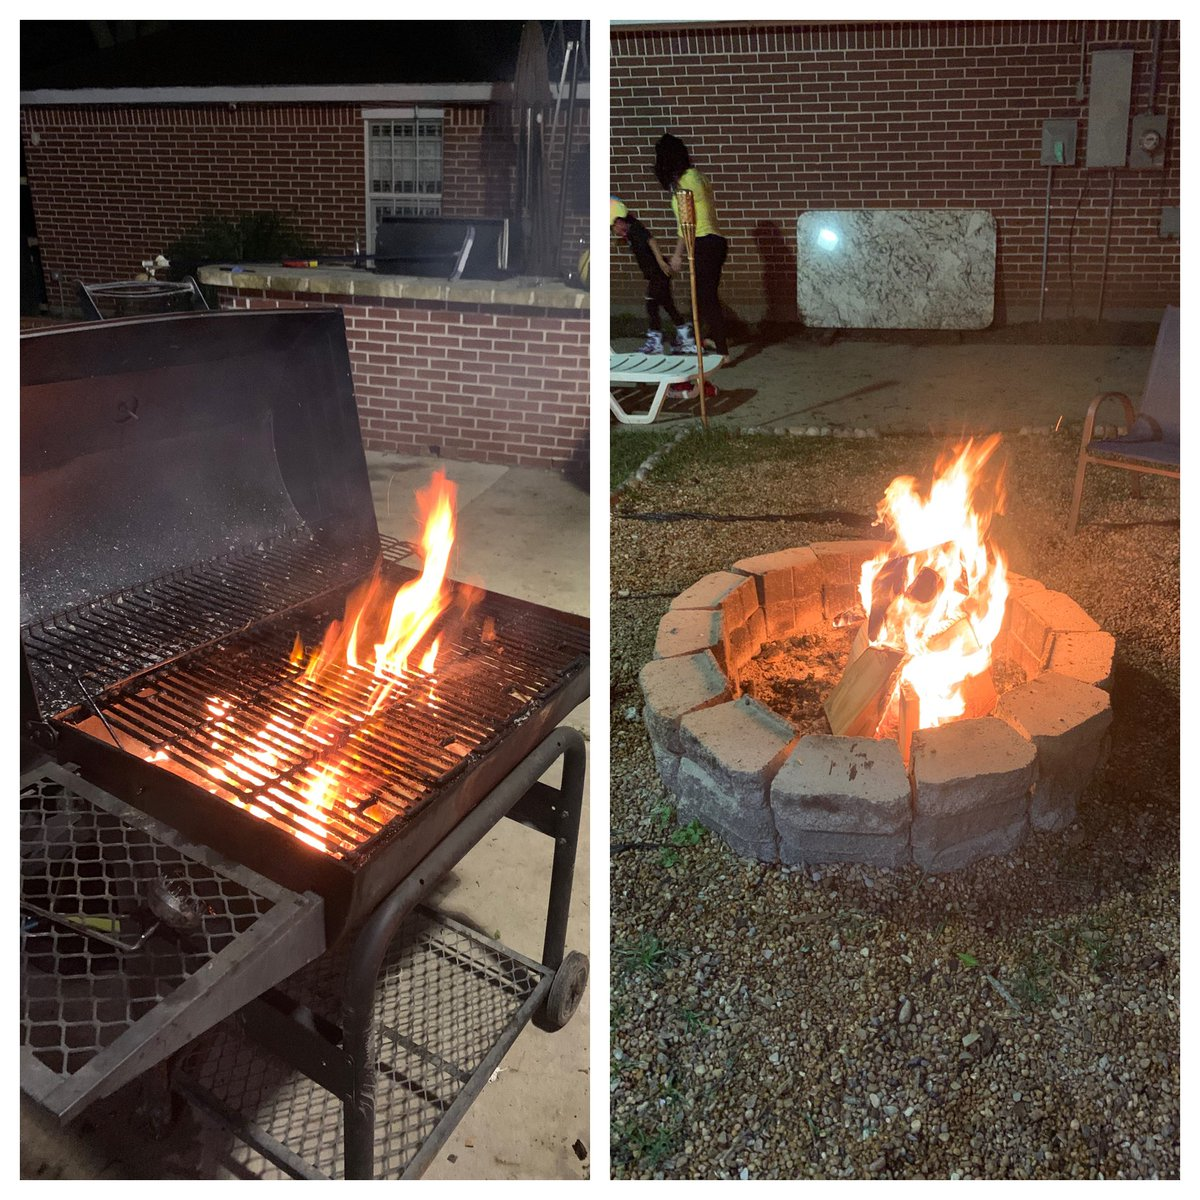 We have the fajita fire and the Bond fire. #blessed #family #babybull #jdexpress